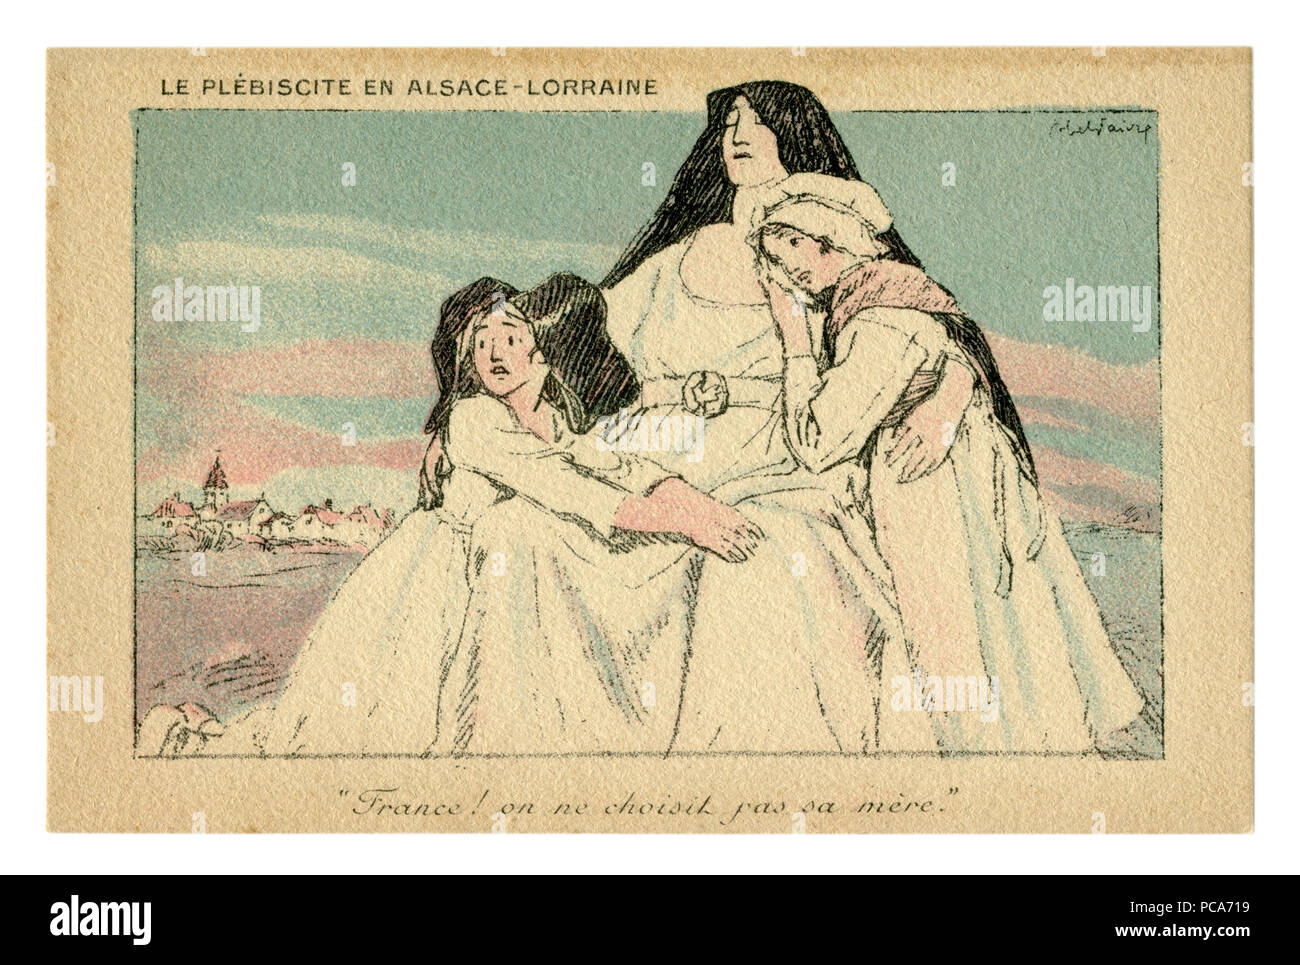 French historical postcard: France liberates Alsace and Lorraine. Allegory. Daughters in mother's arms. Victory! Symbolism. world war one 1914-1918. - Stock Image